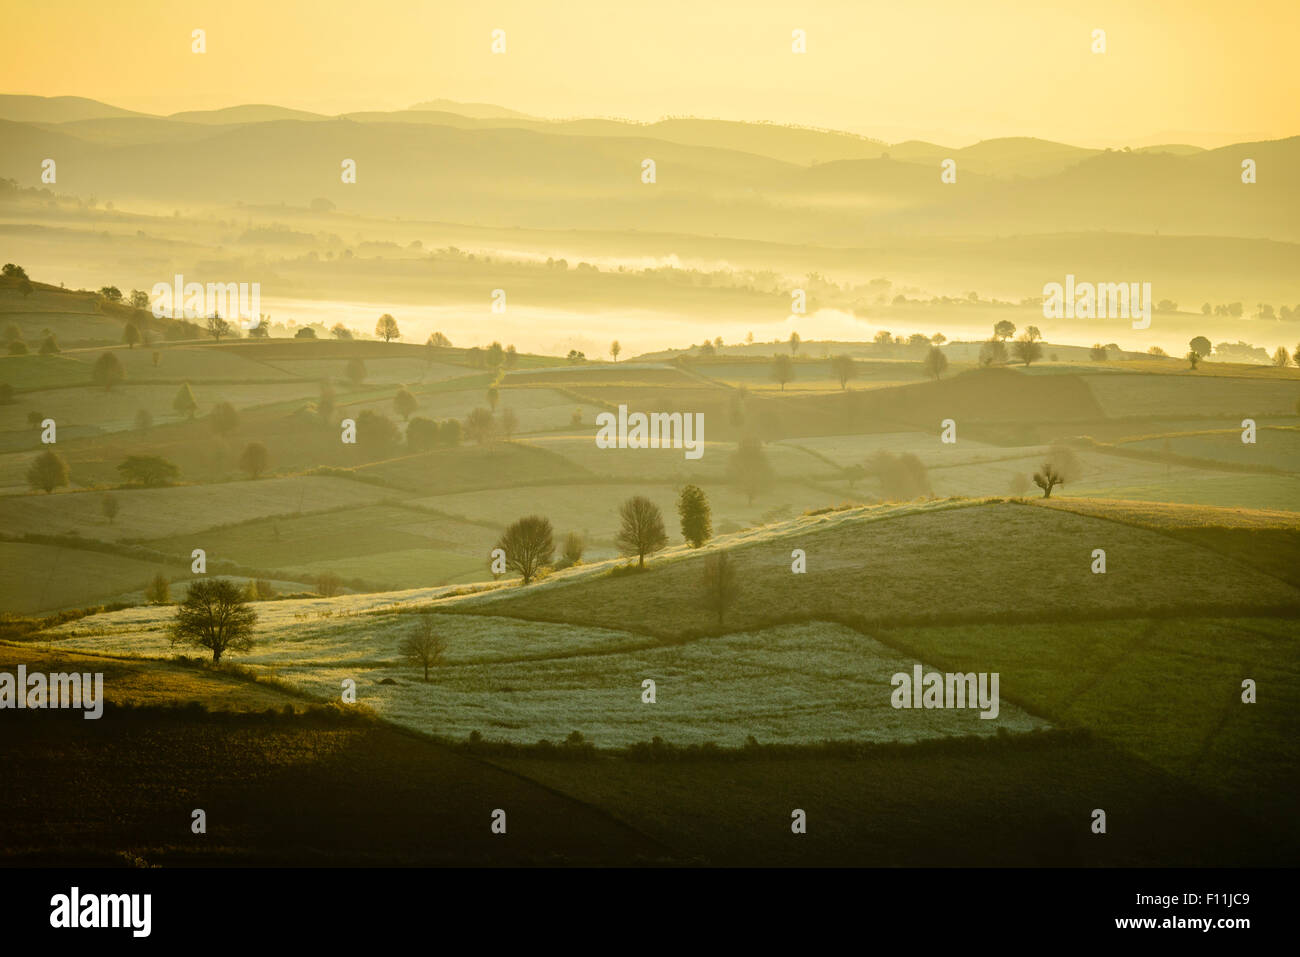 Aerial view of fog in rural farmland, Mandalay, Myanmar - Stock Image